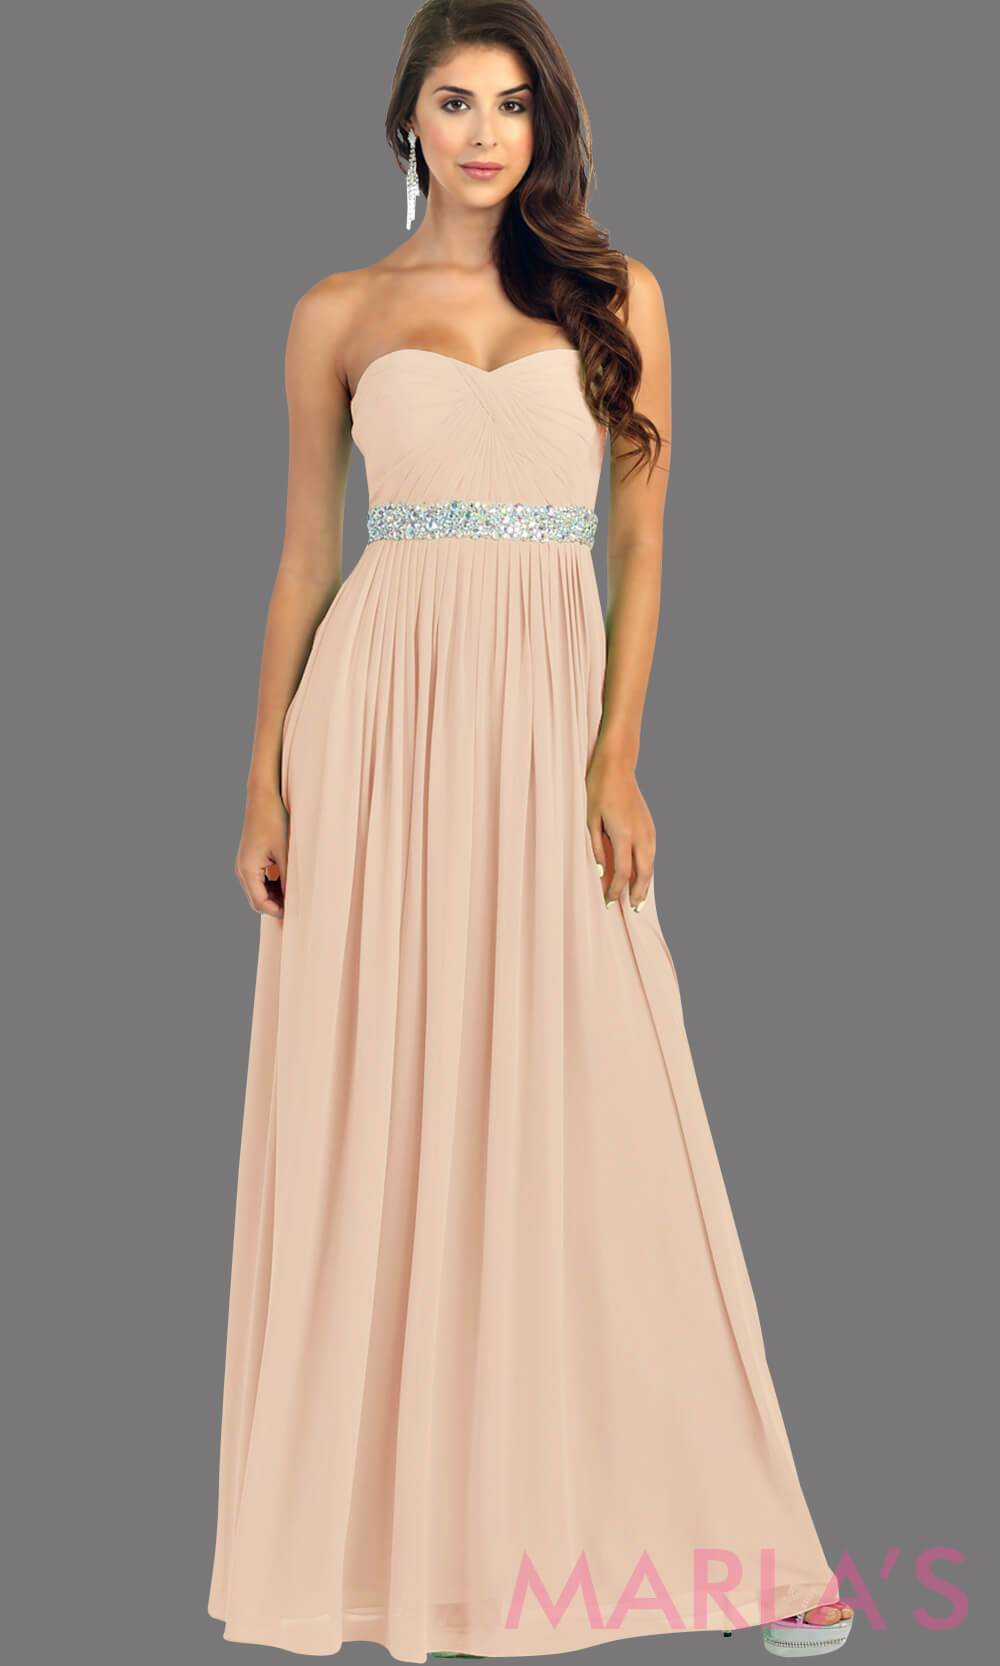 Long dusty rose flowy dress with corset back. It has a multicolor rhinestone belt under the bust. Perfect for bridesmaid dresses, simple prom dress, and wedding guest dress. This is available in plus sizes